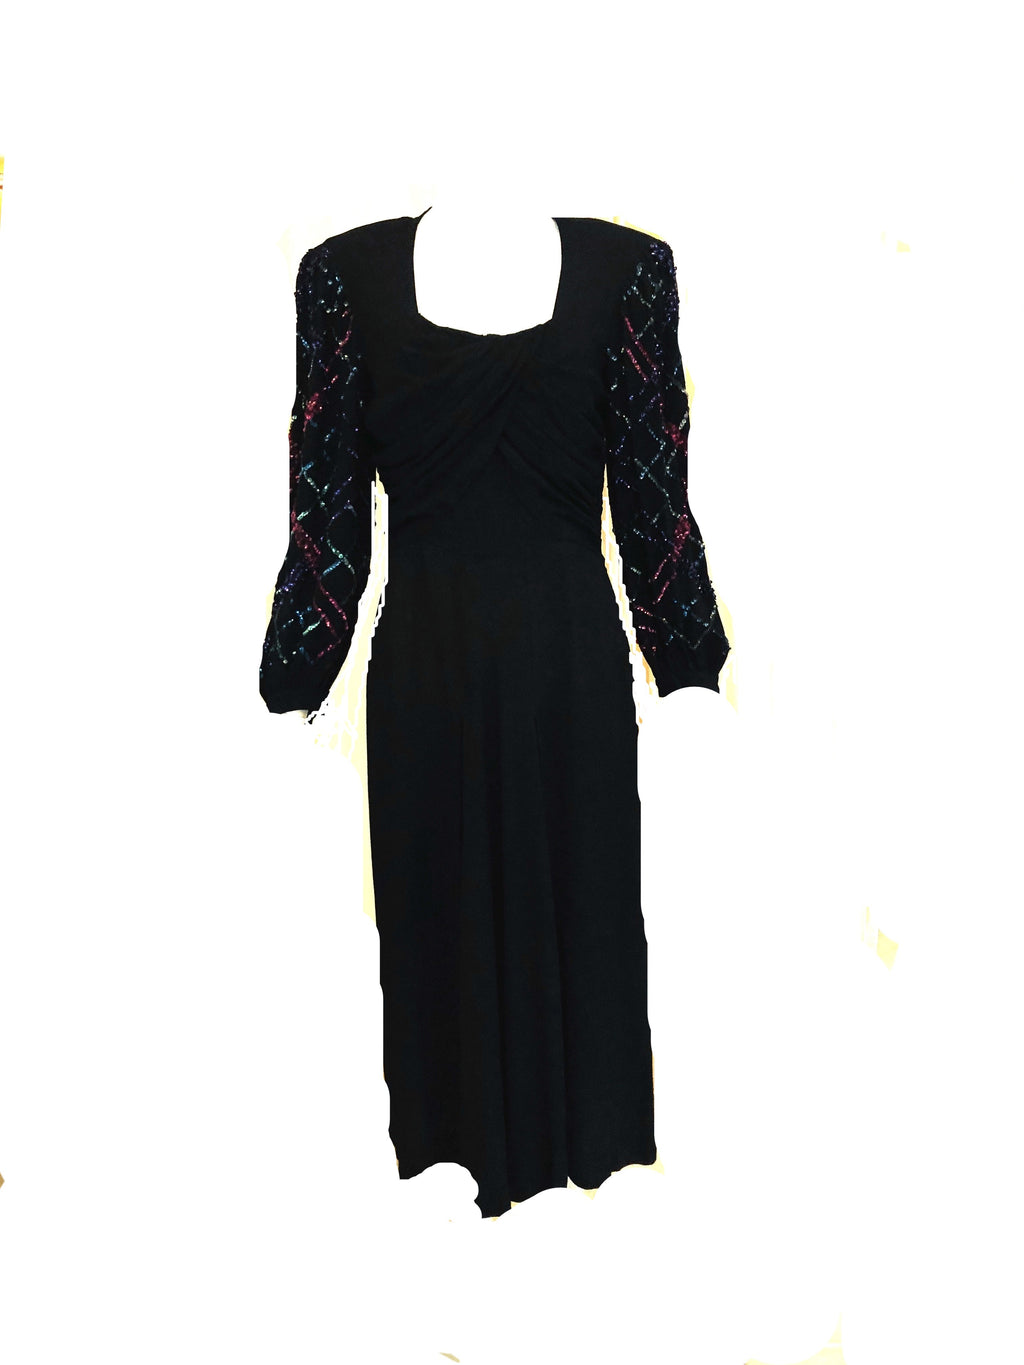 40s Black Crepe Long Sleeve Dress  with Sequin Detailed Sleeves and Draped Bodice FRONT 1 of 4